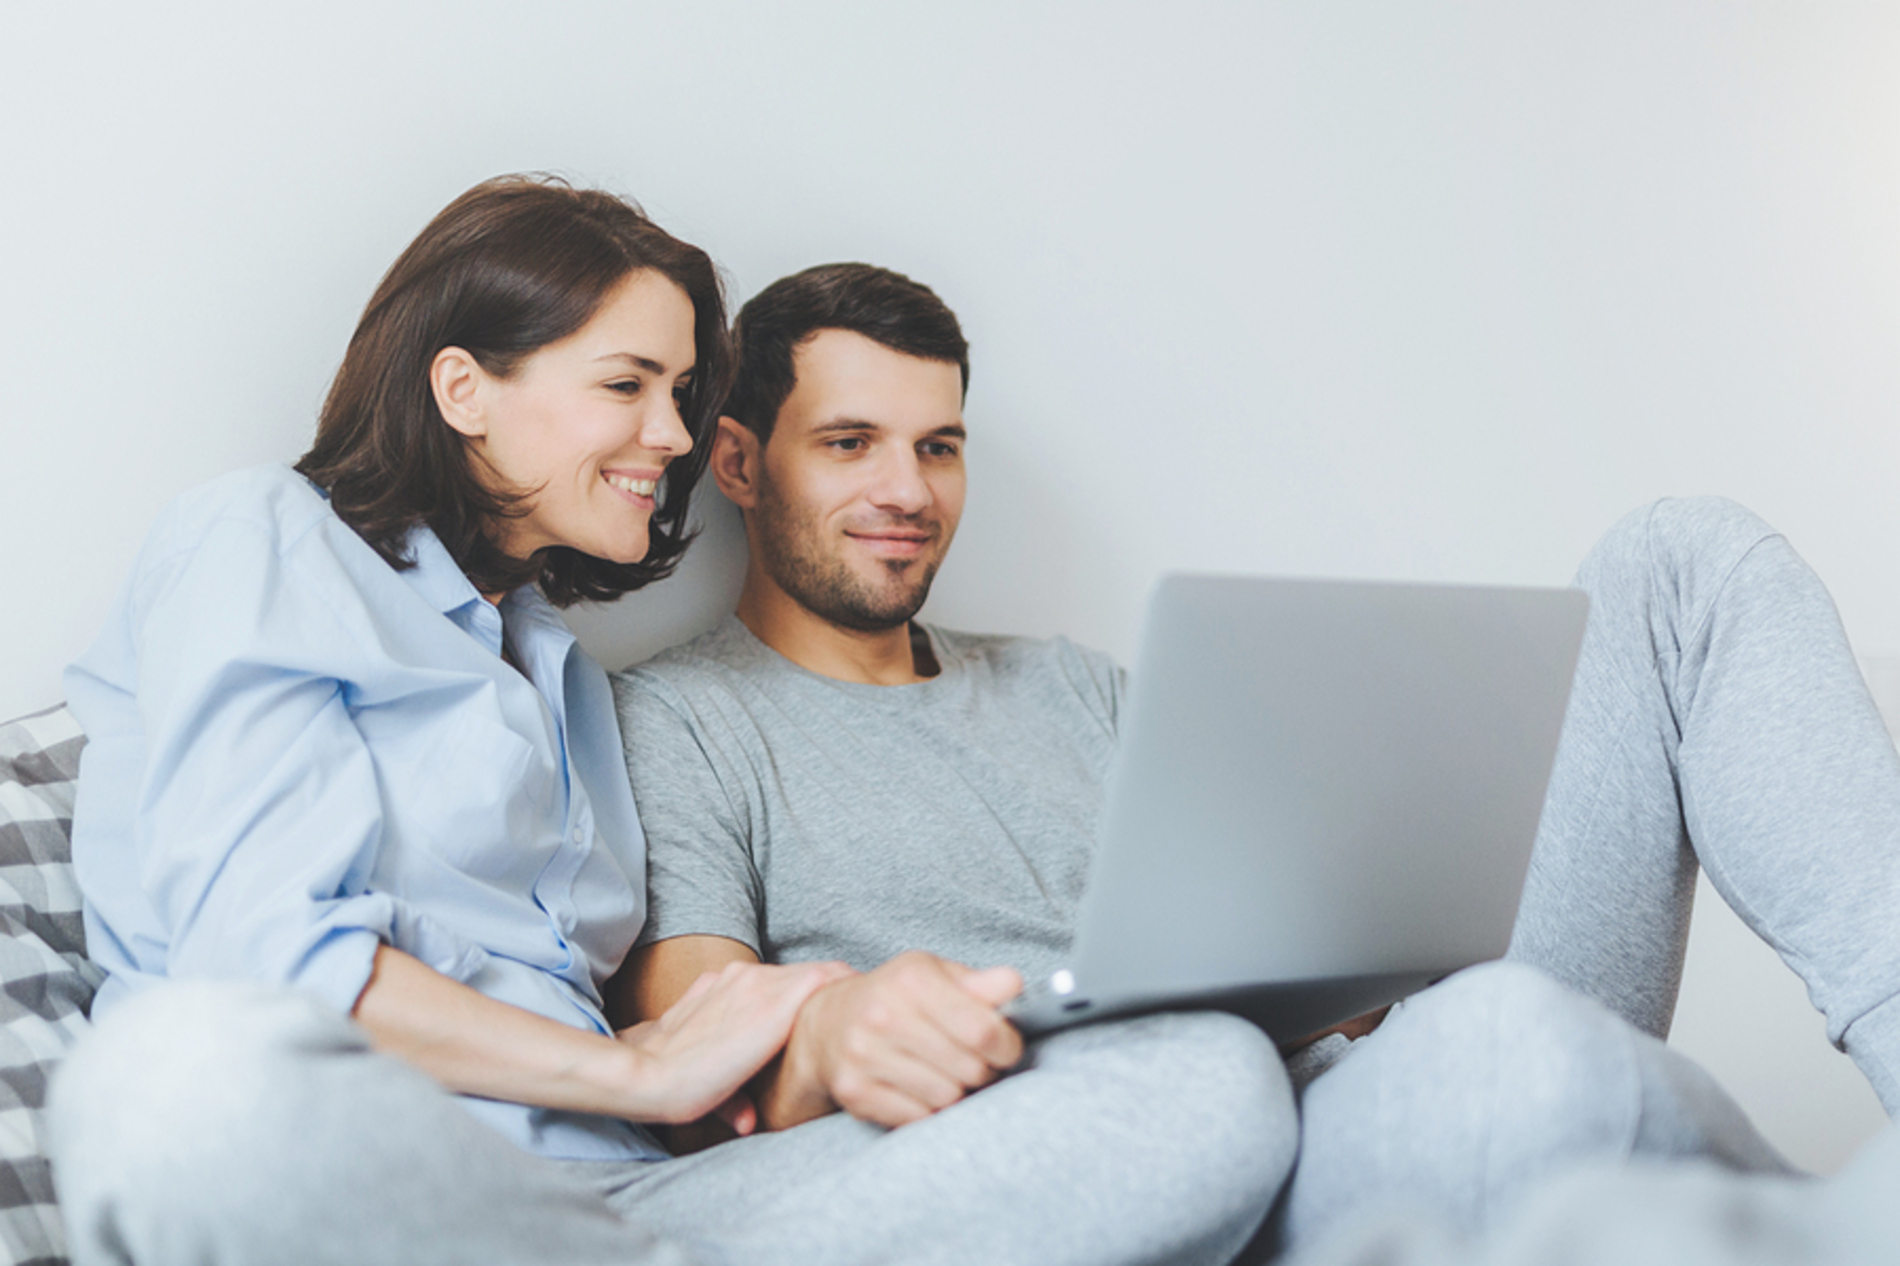 Couple smiling while looking at a laptop.